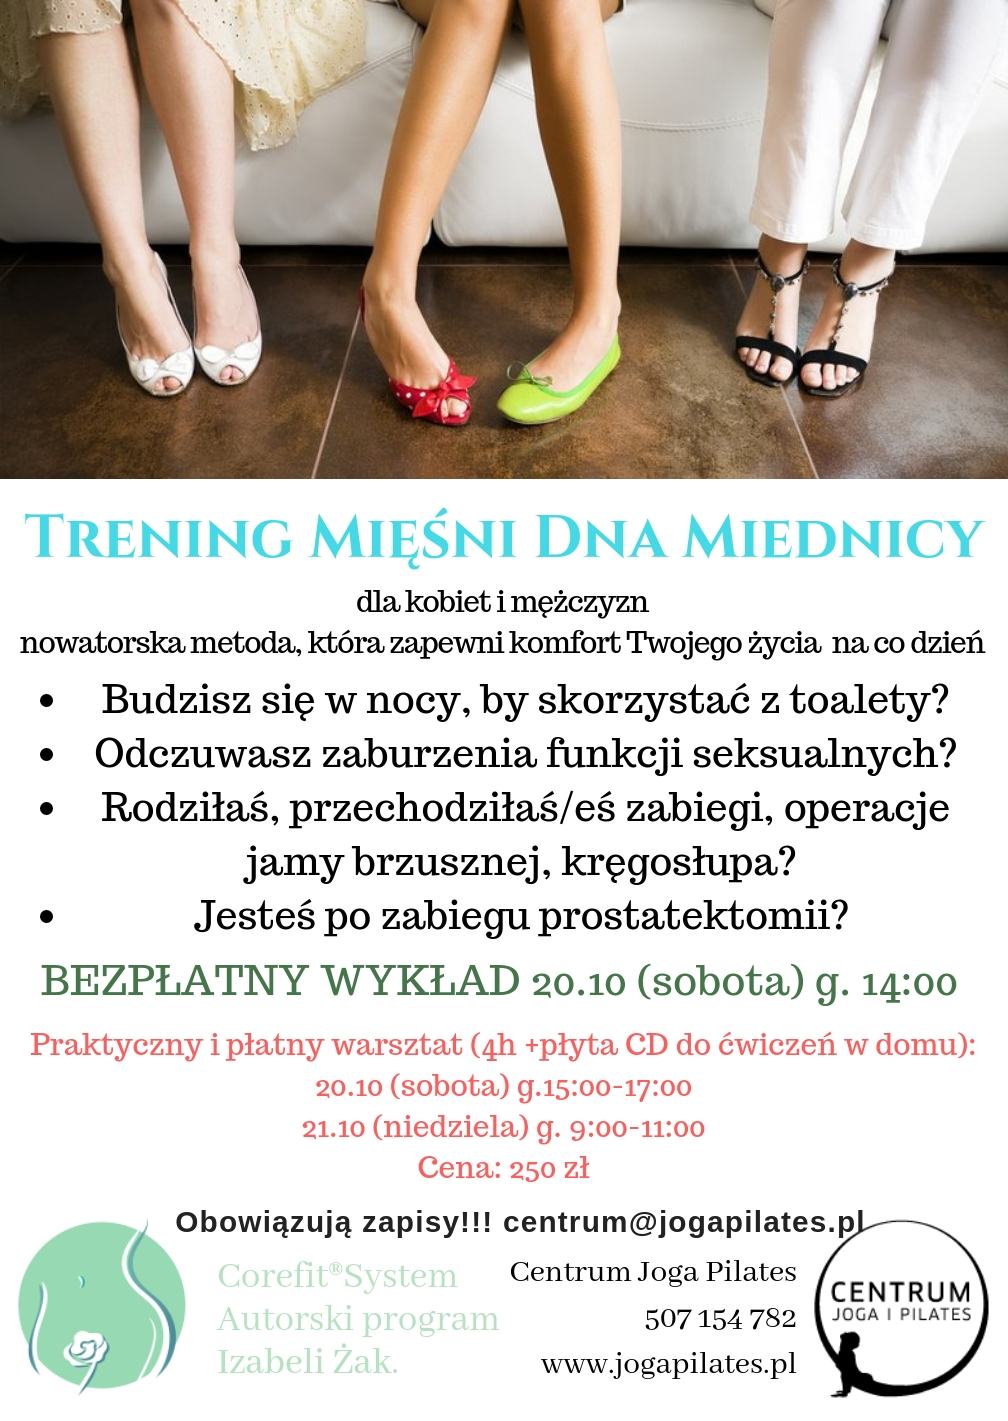 Trening Dna Miednicy (1)